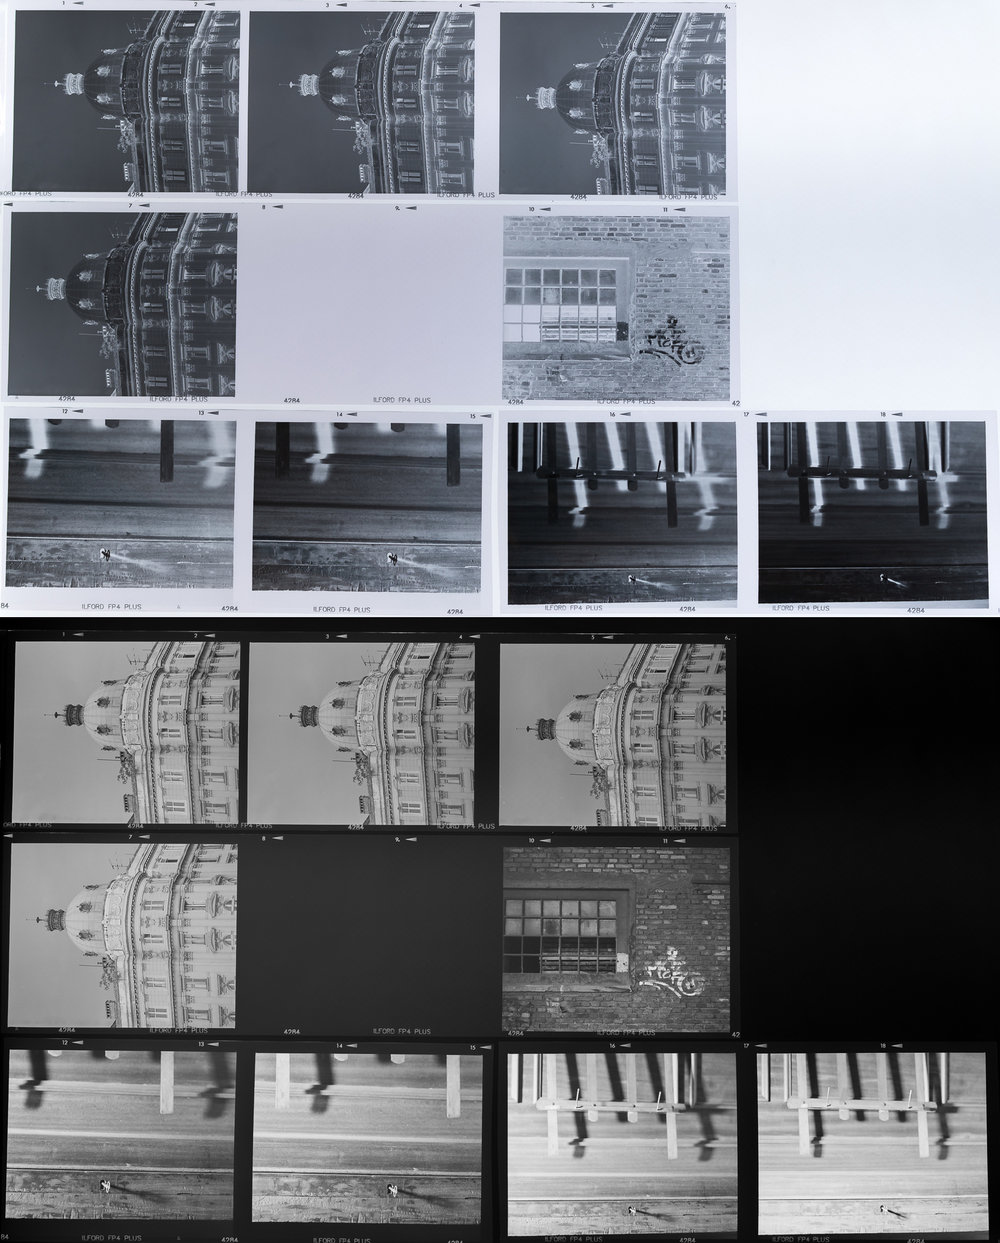 2016-09-10_Negatives_Contact_Sheet.jpg